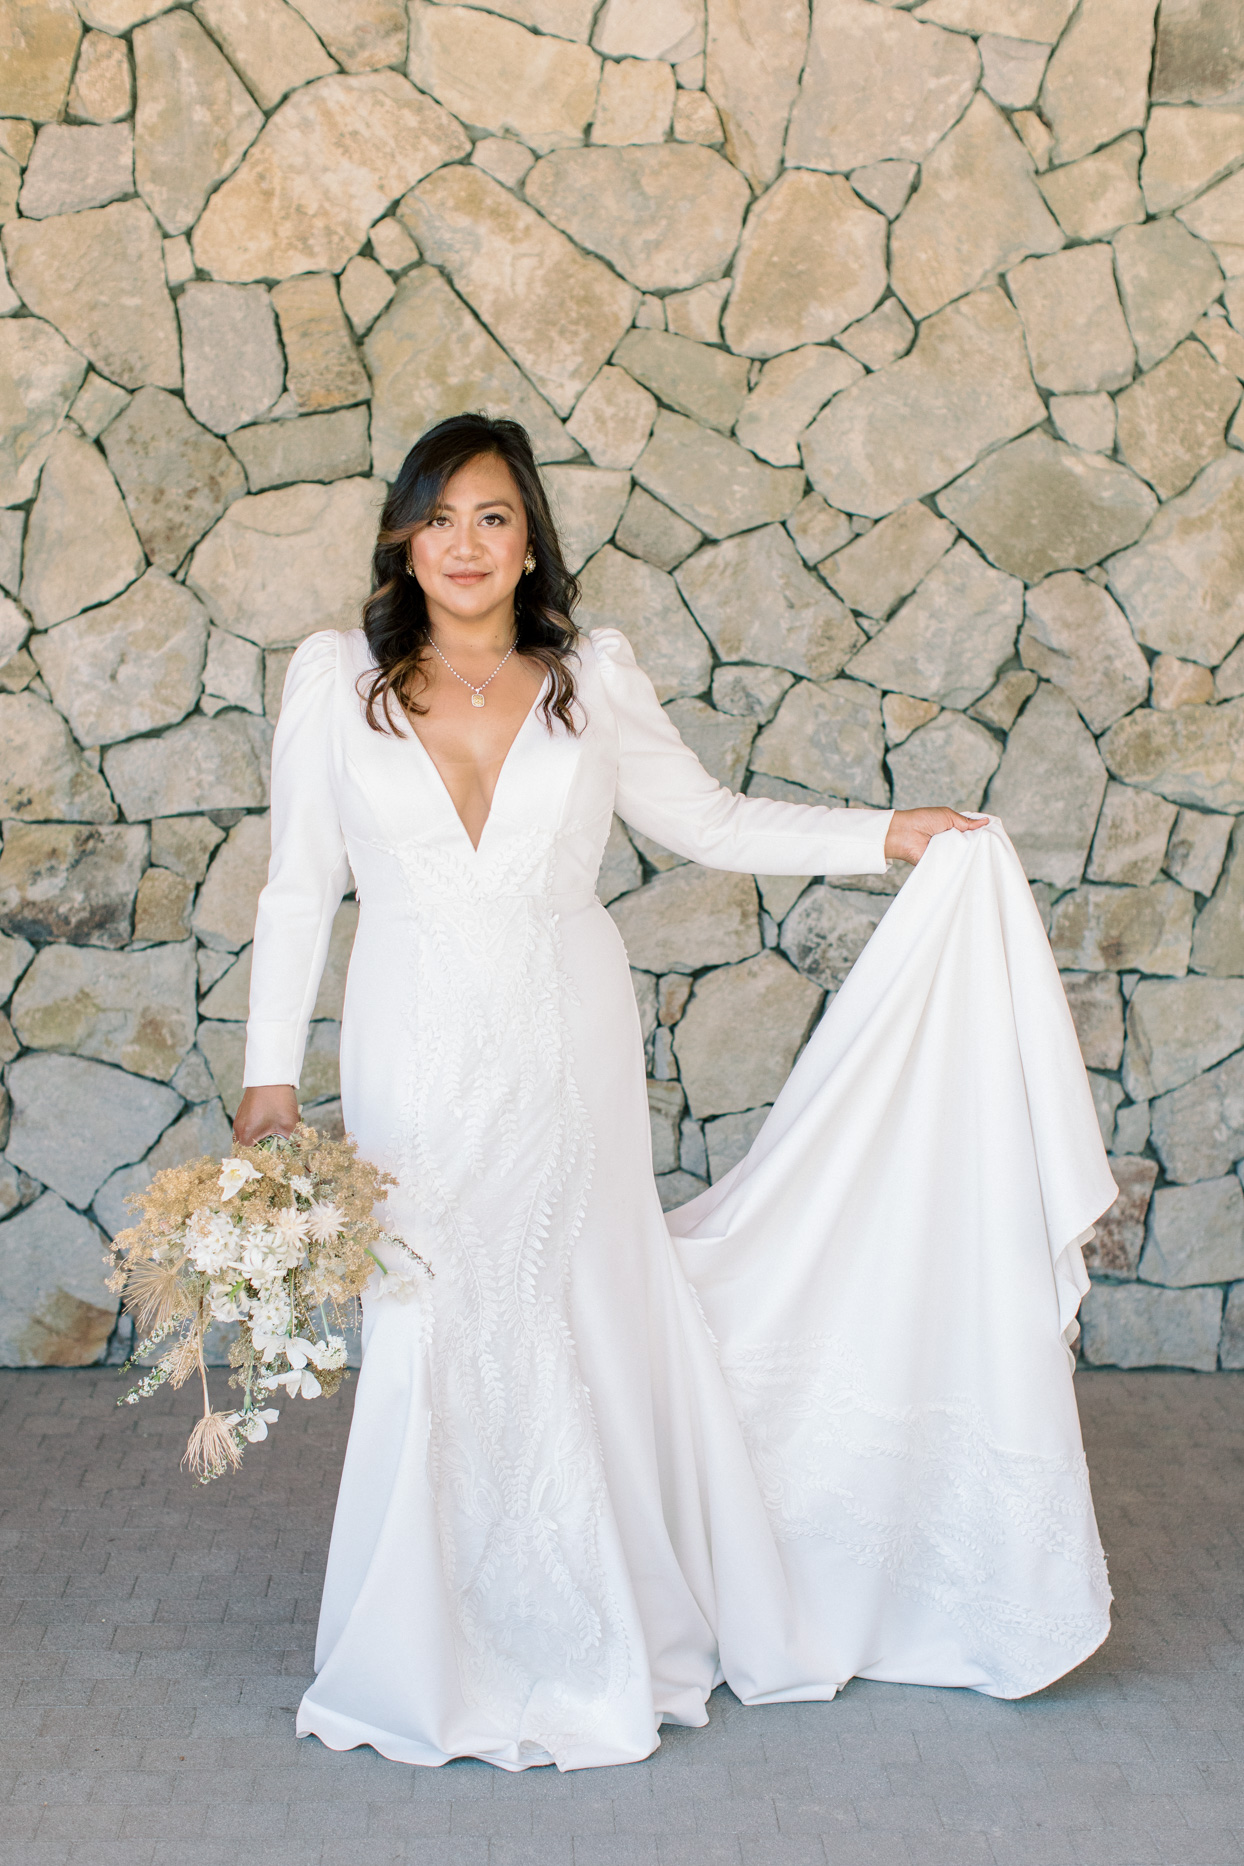 bride in white wedding dress for vow renewal